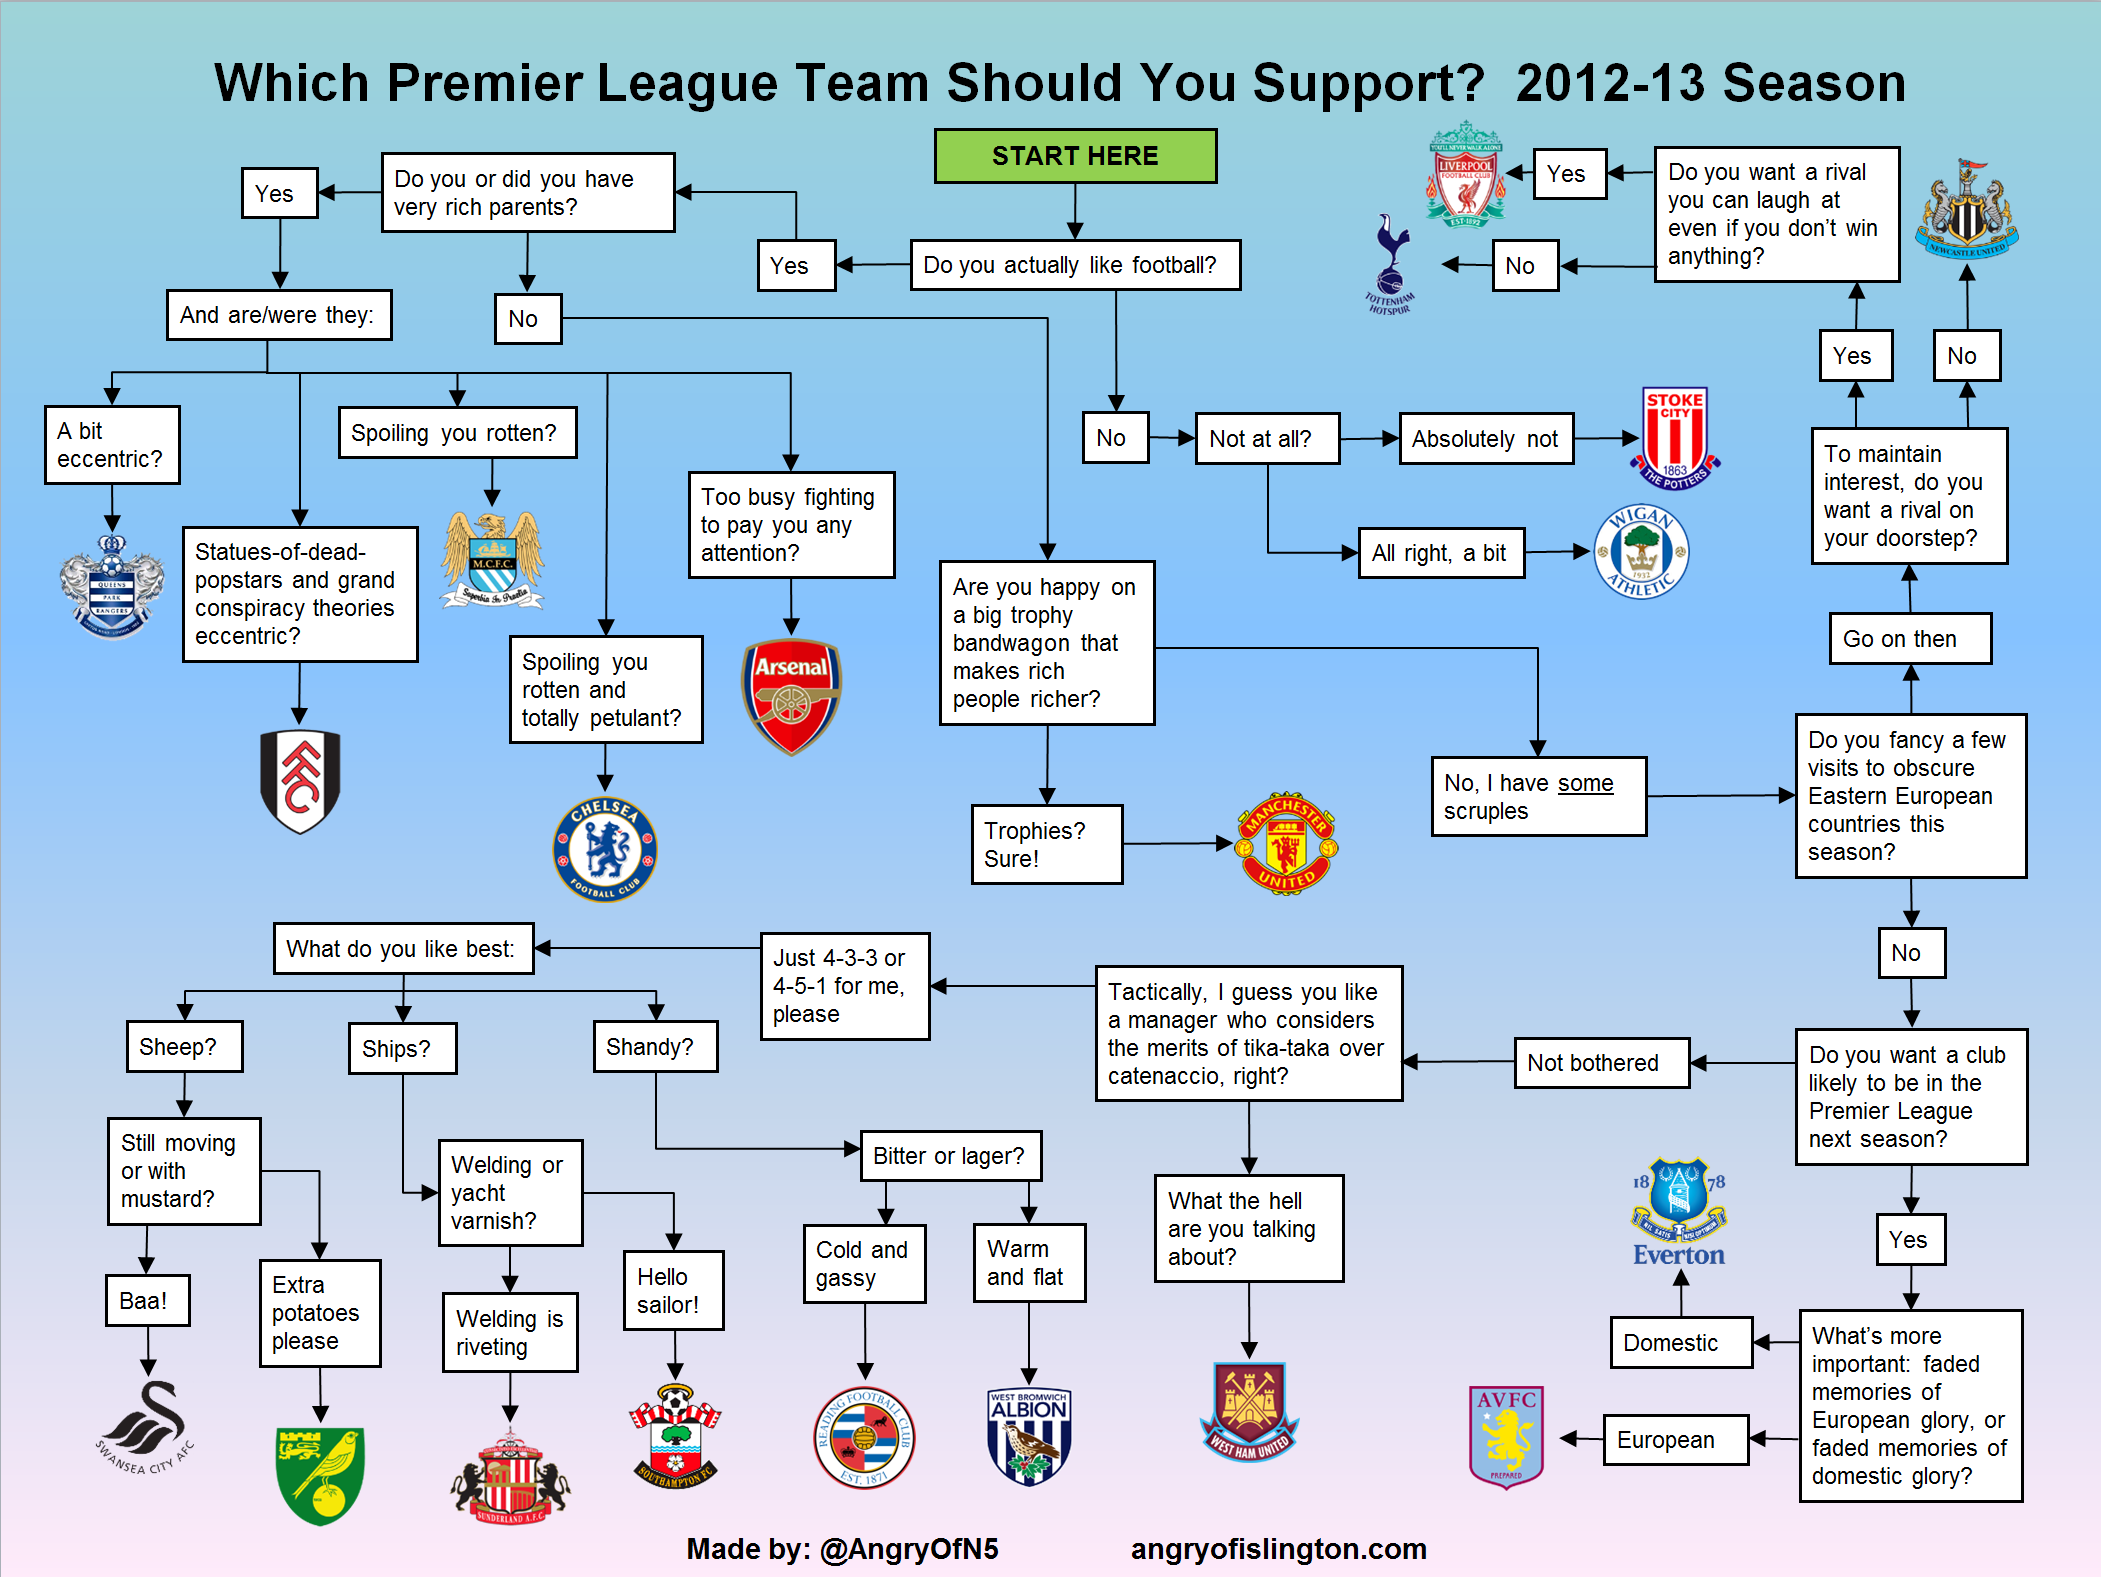 nfl football map of teams with Which Premier League Team Should I Support 2012 13 Version on 11888541325 besides 15649 besides PhotoAlbum in addition 326223 furthermore Seatingcharts.